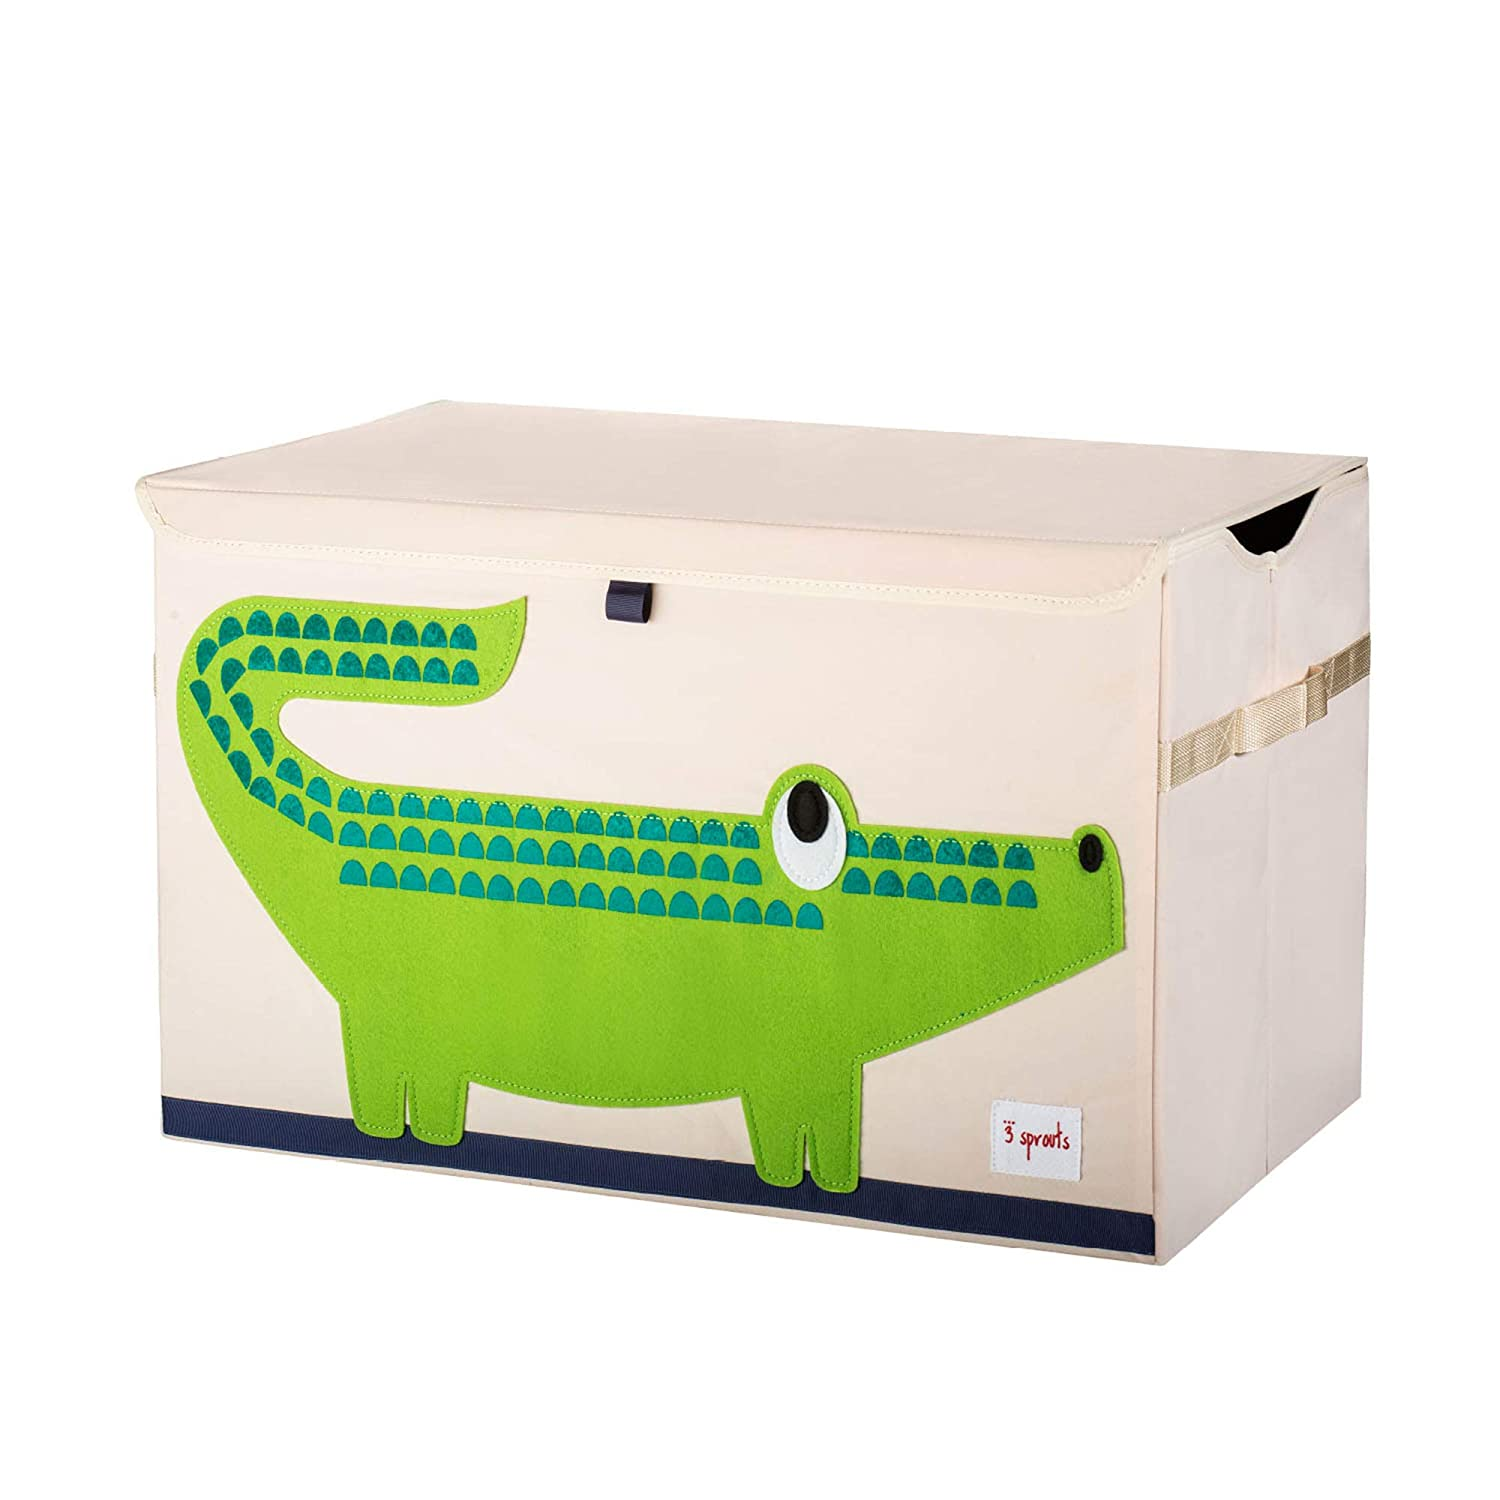 3 Sprouts Kids Toy Chest - Storage Trunk for Boys and Girls Room, Crocodile 71xuQLZa6sL